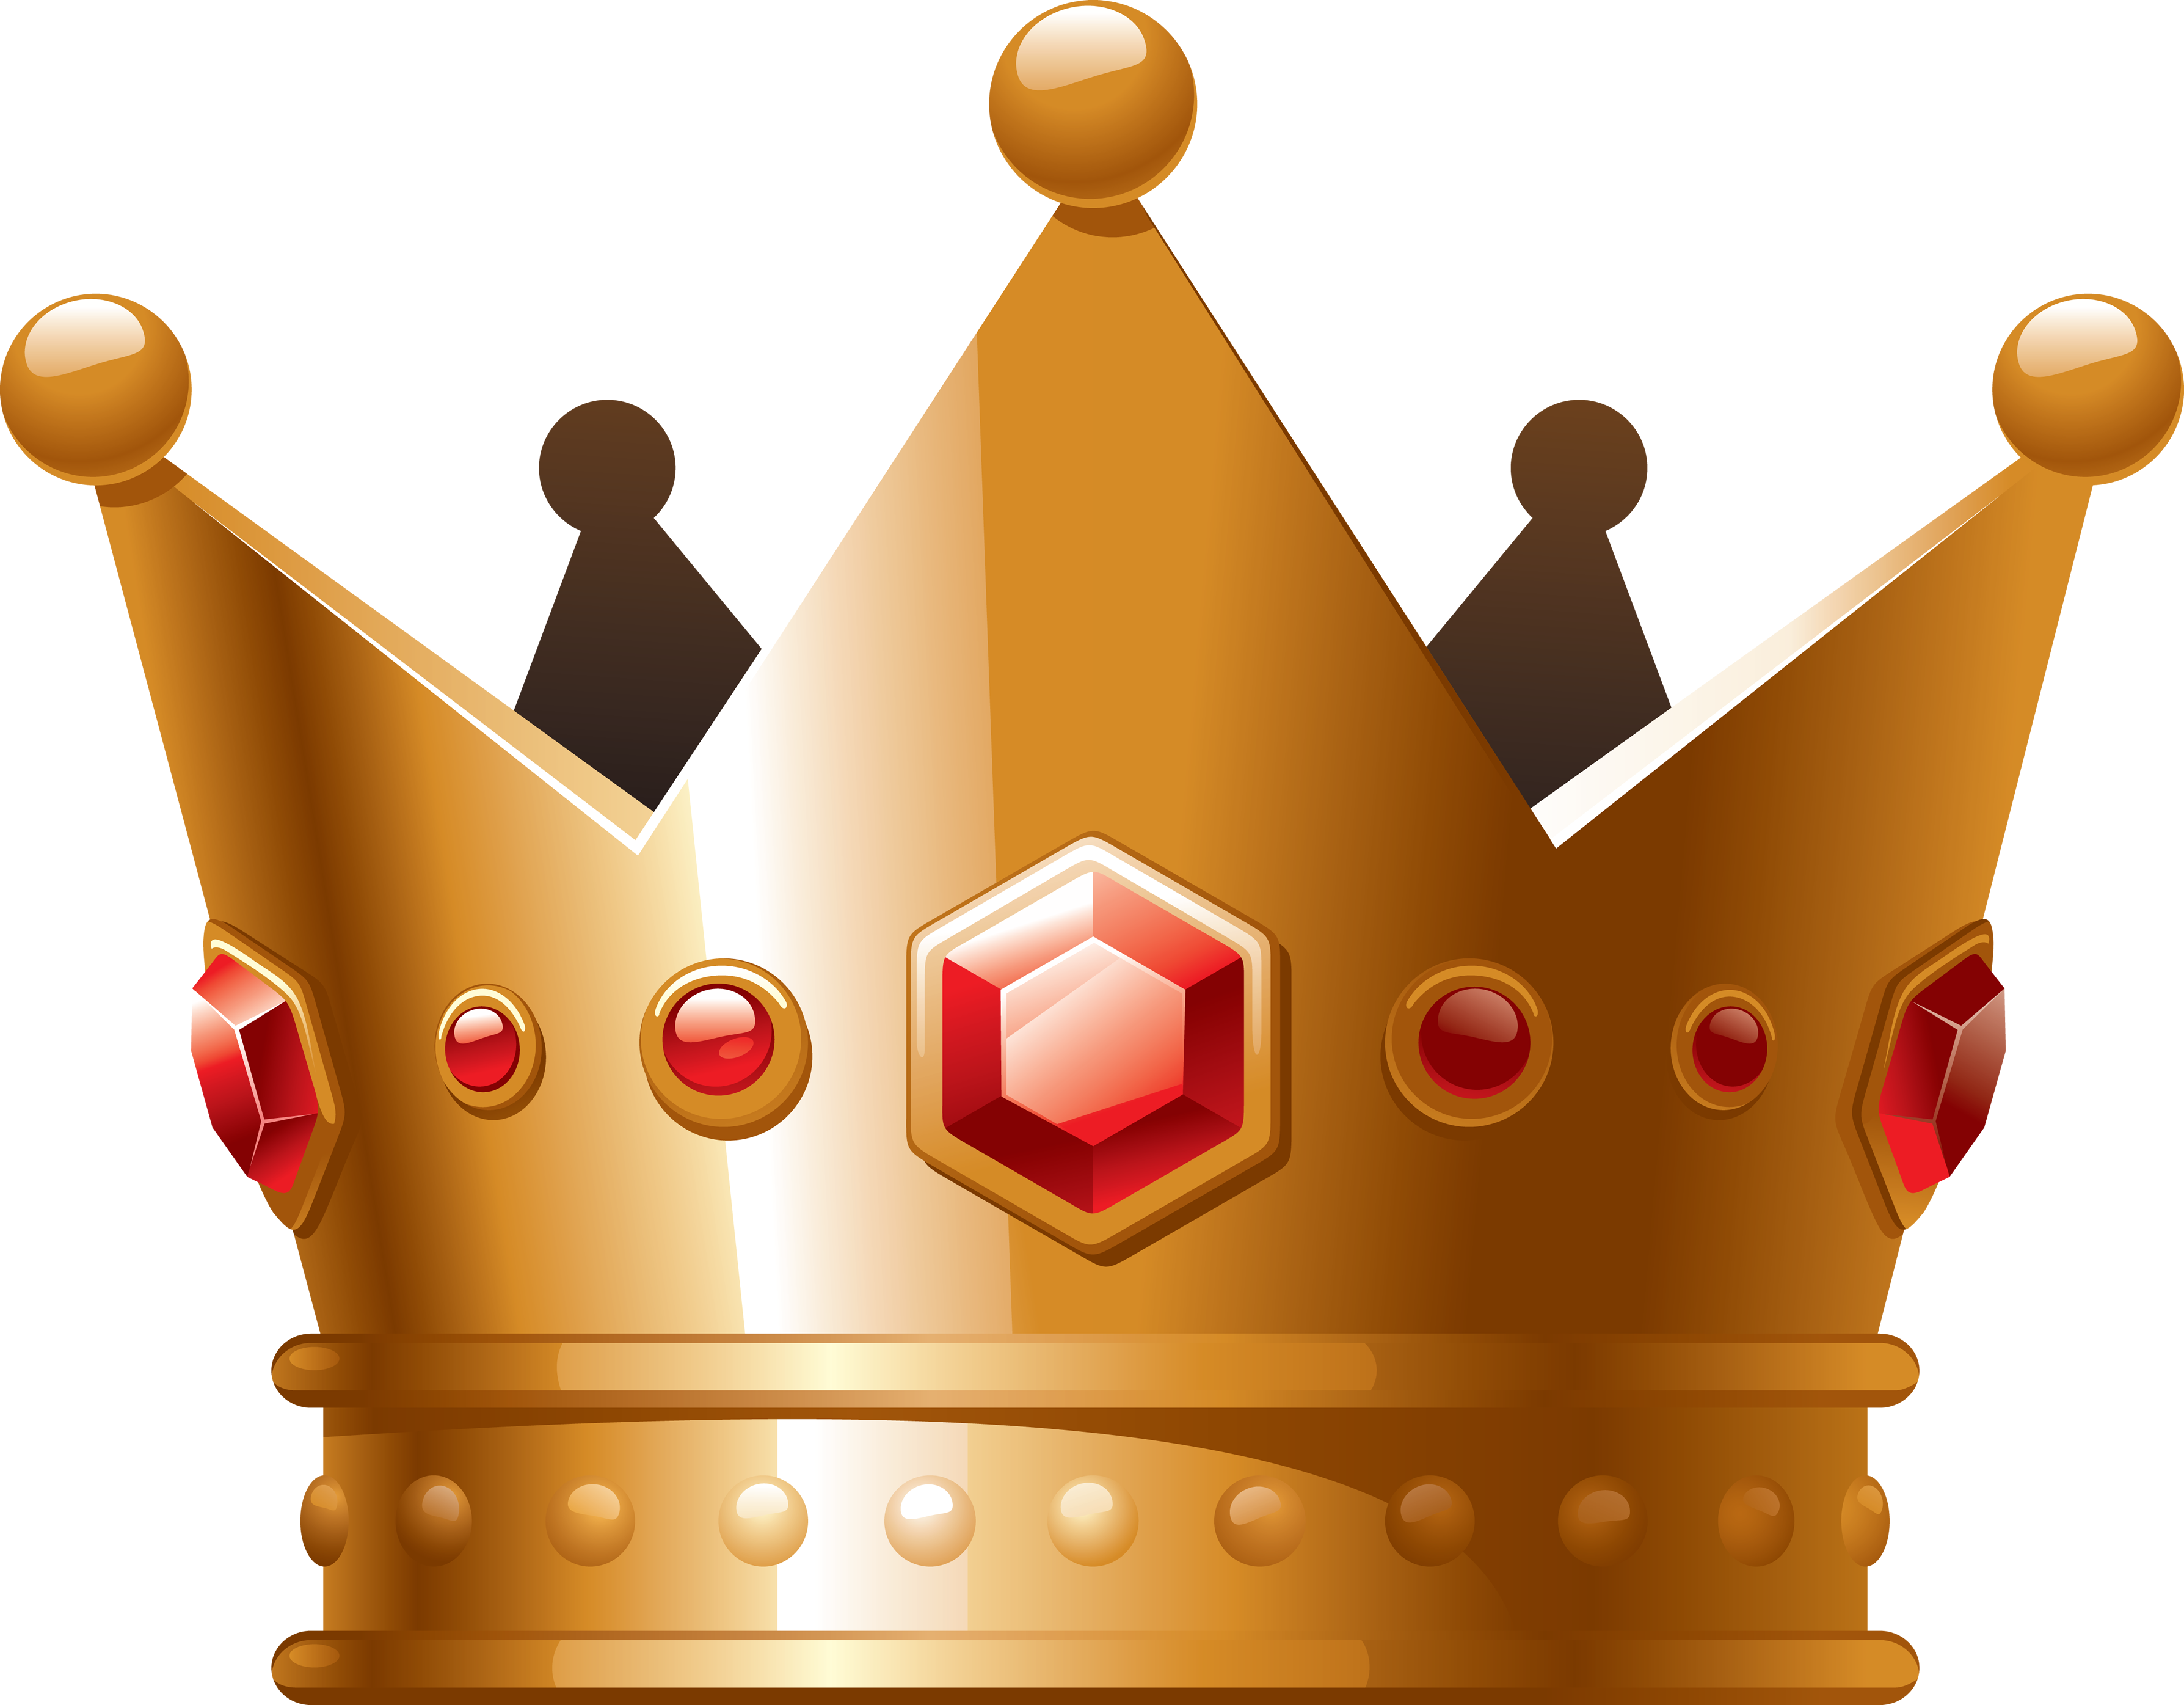 Crown png clipart. Images free download